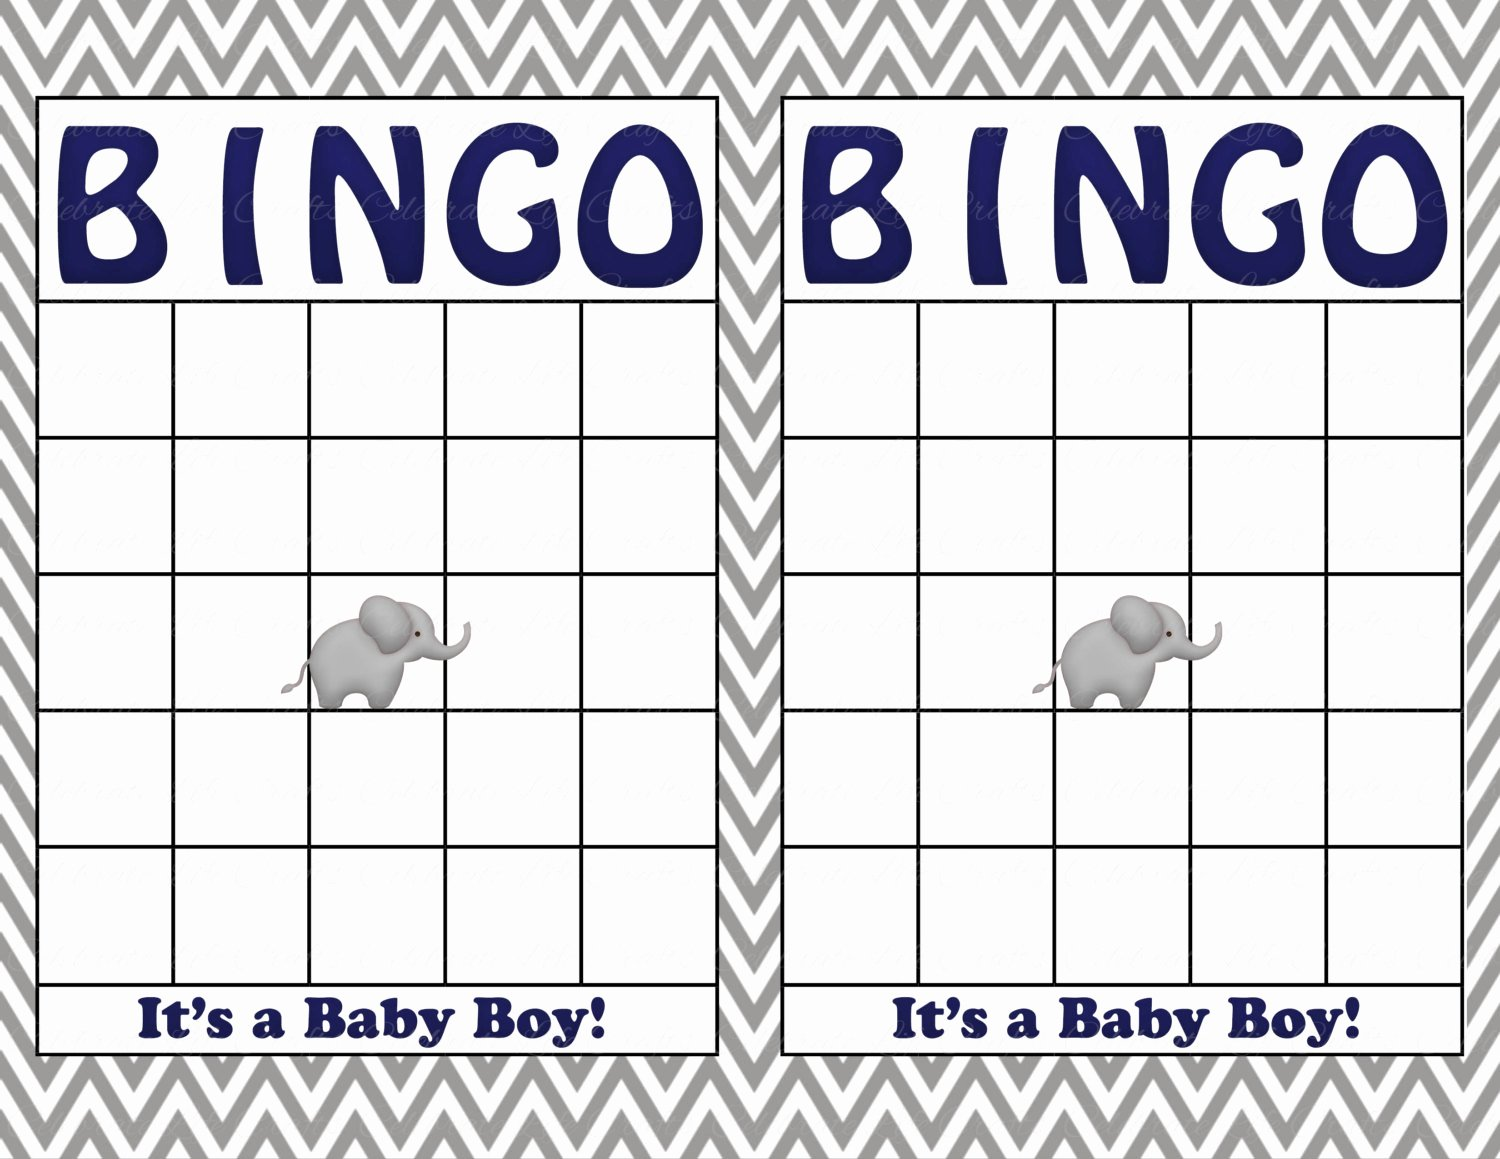 Baby Shower Card Printable New Blank Baby Shower Bingo Cards Printable Party Baby Boy